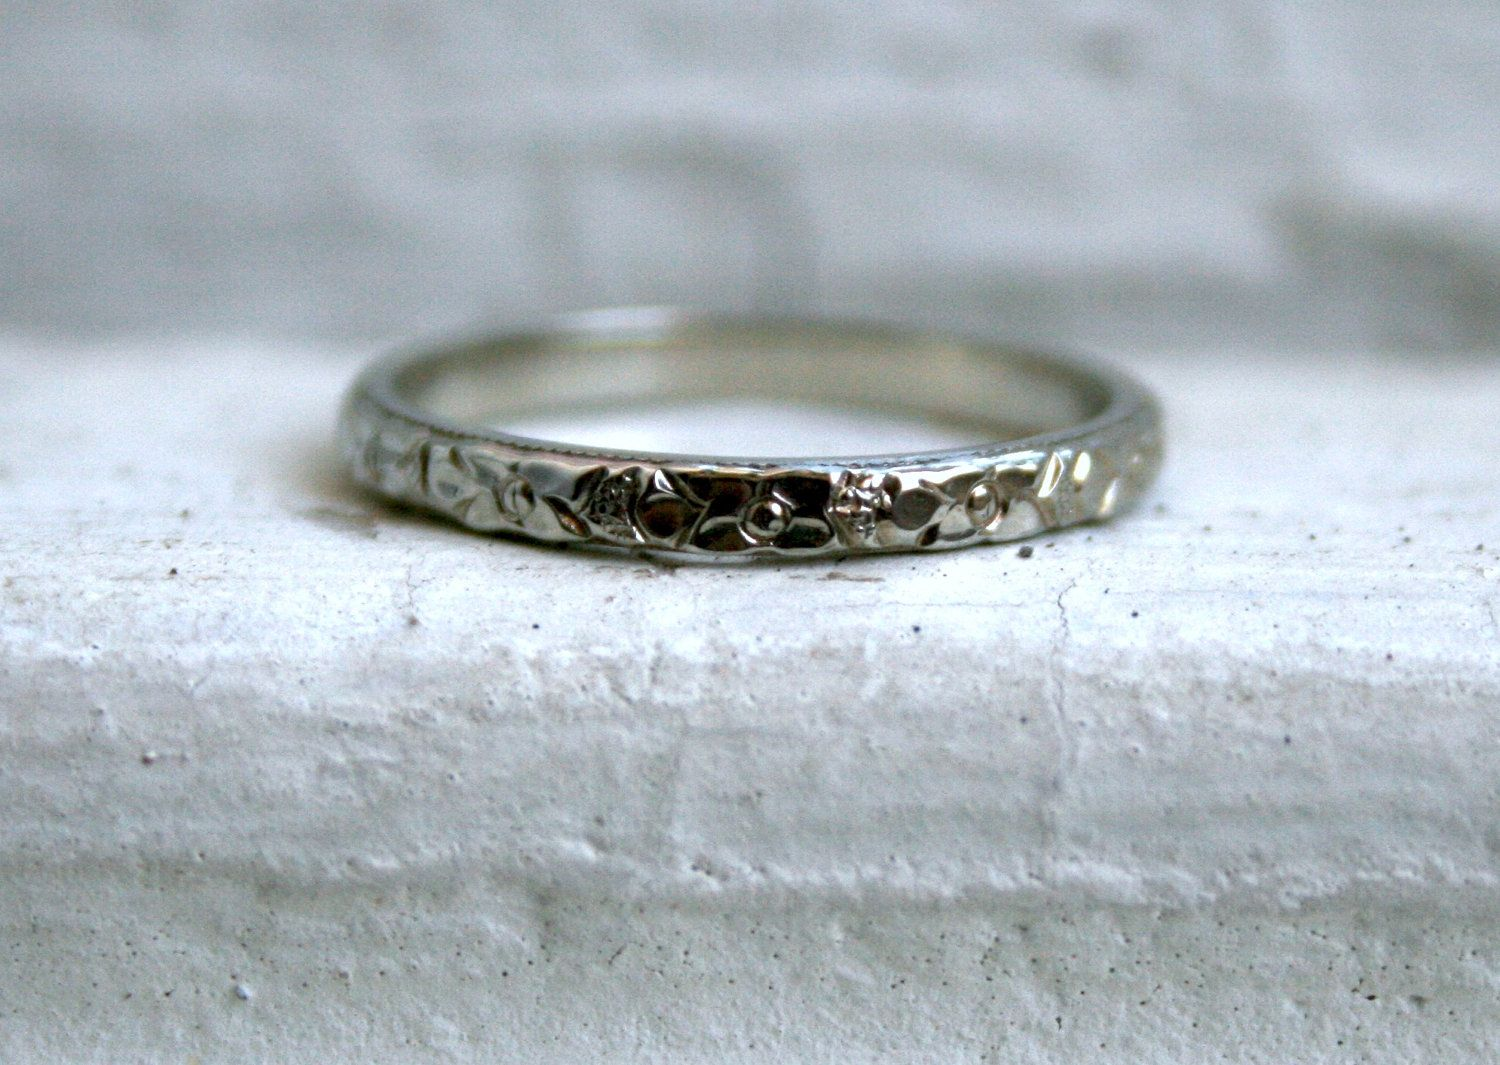 Antique Etched/Engraved 14K White Gold Wedding Band. 265